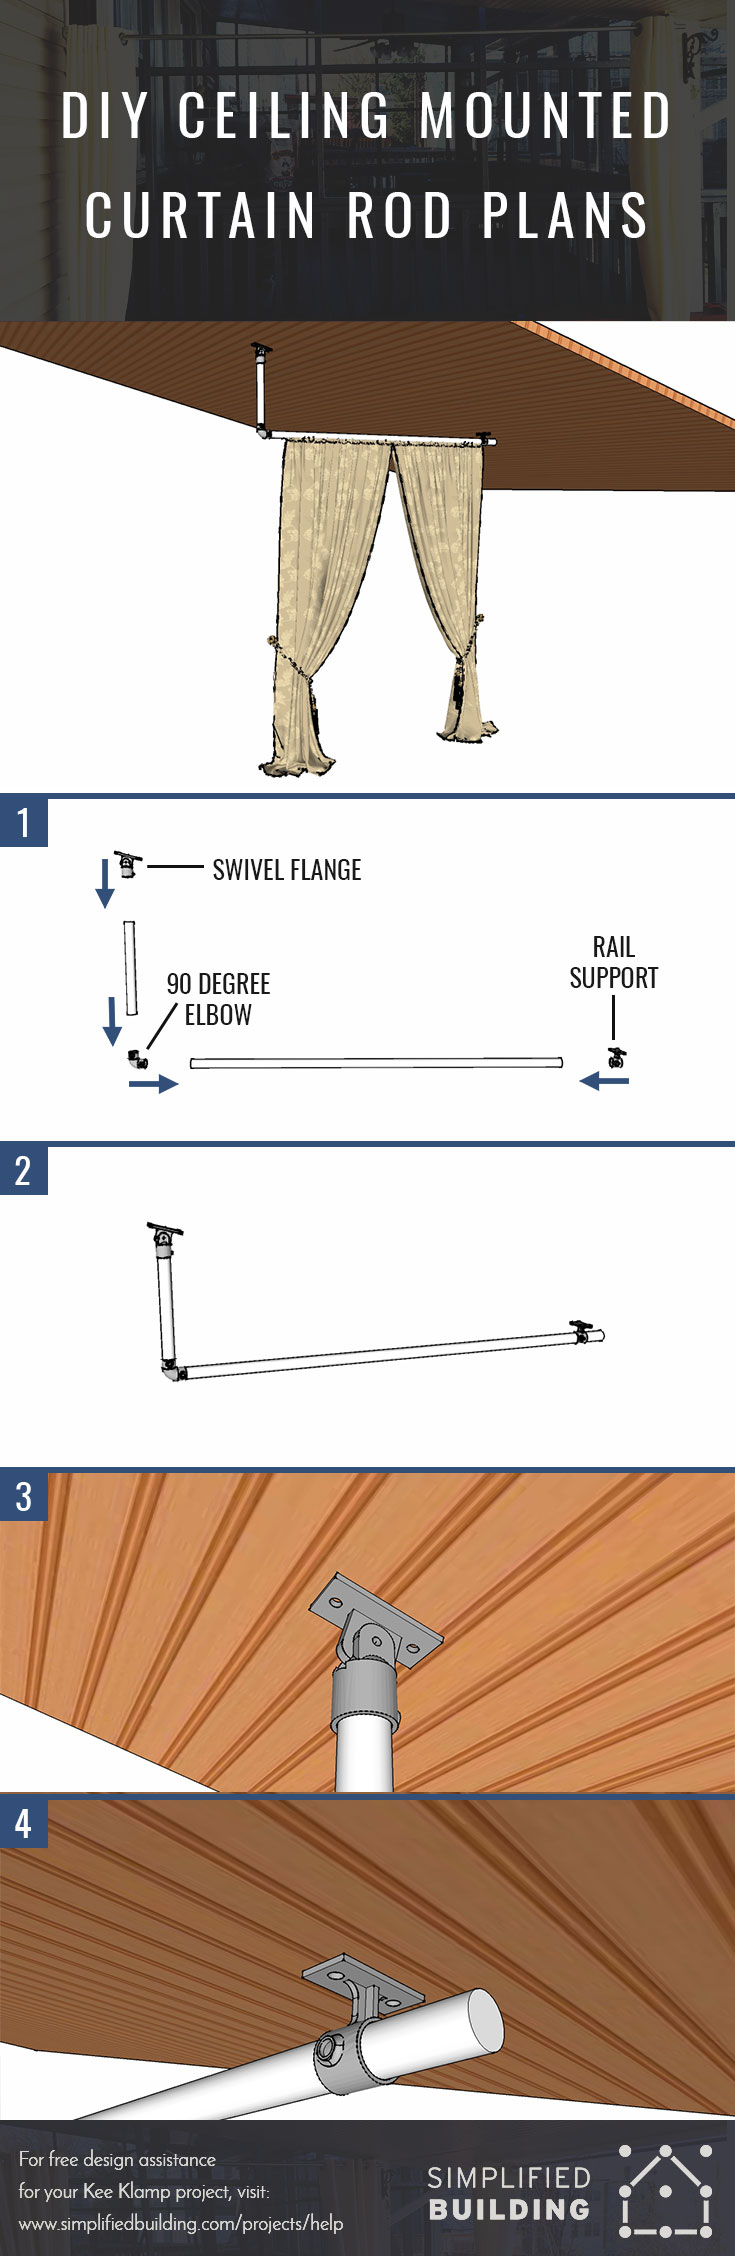 Mounting Curtain Rods Diy Ceiling Mounted Curtain Rods With Step By Step Instructions